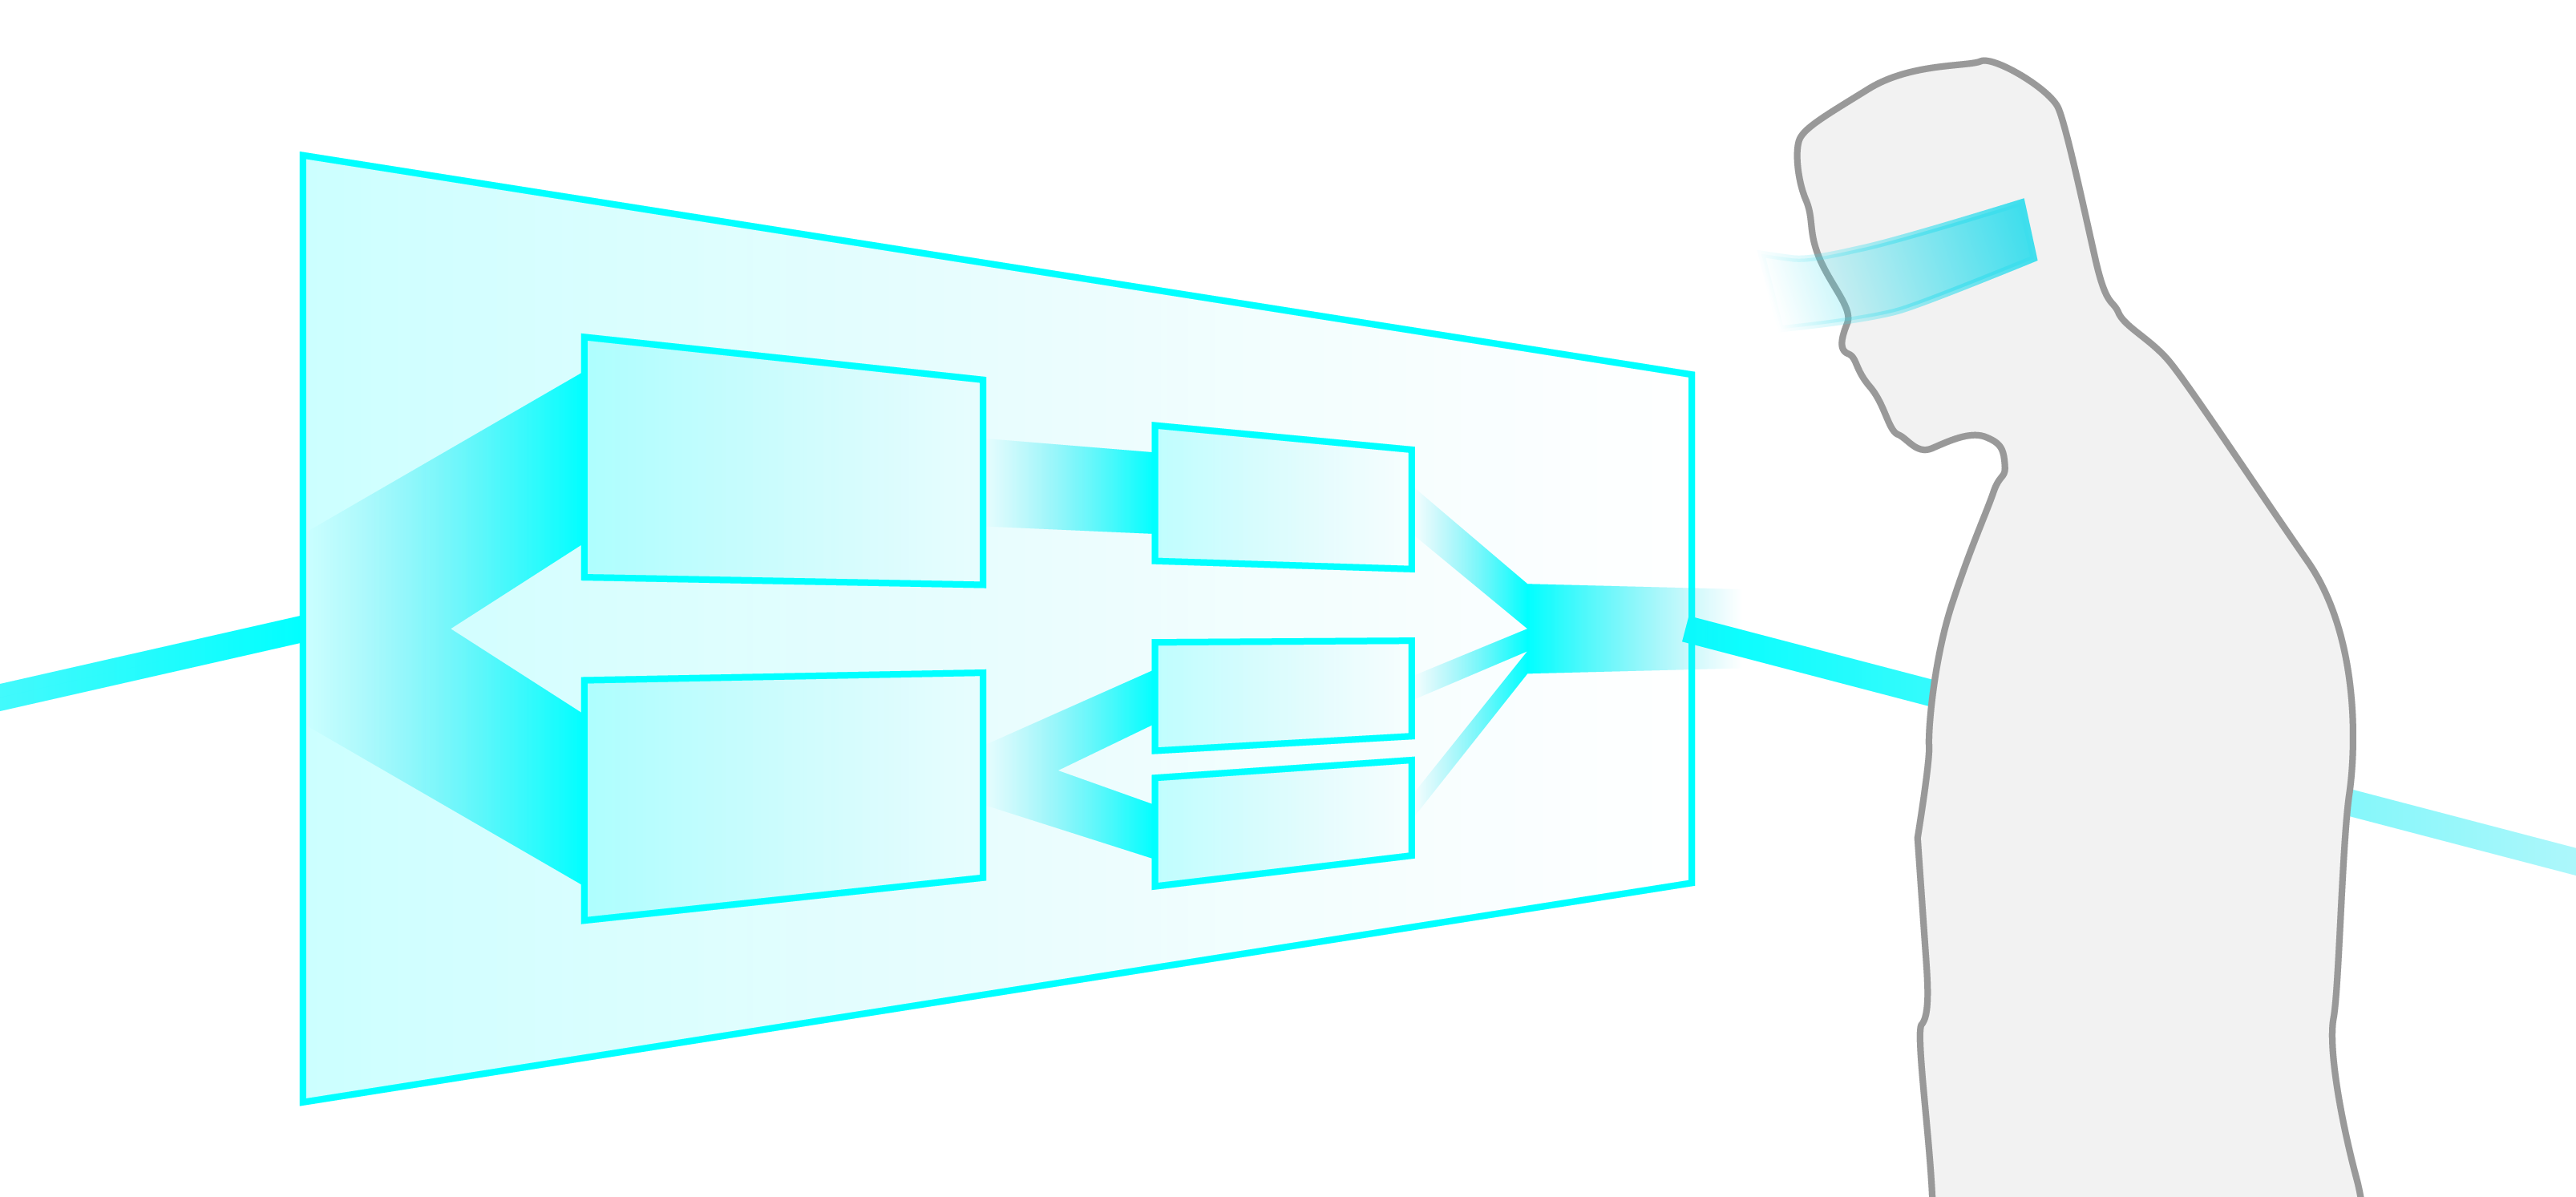 Example illustration of an AR application using the Filter/Flow model